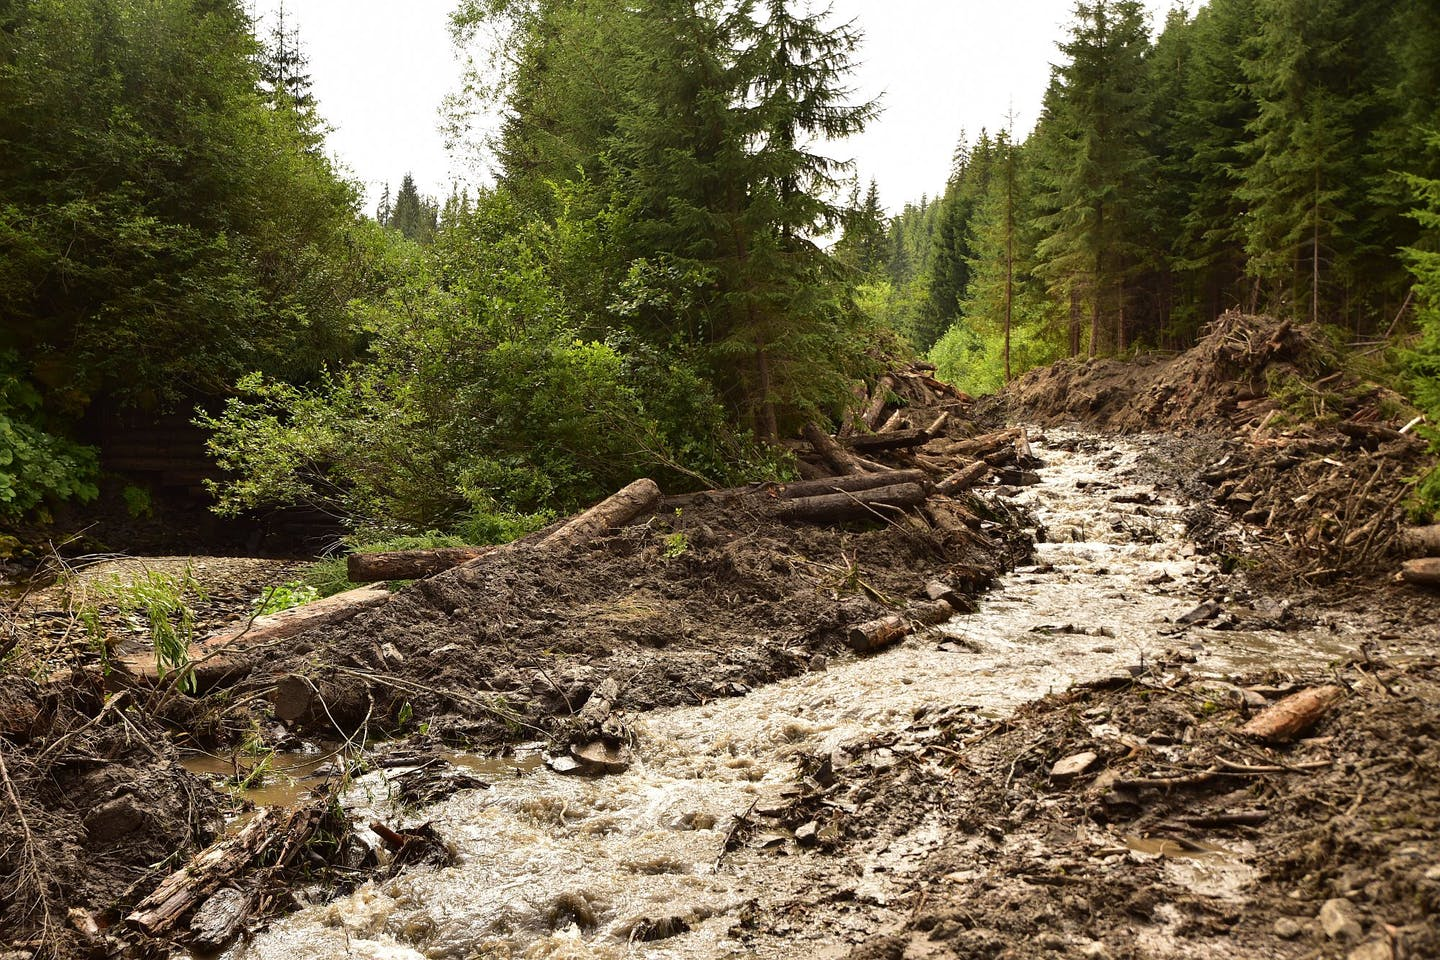 New WWF analysis reveals the possibility of freeing at least 7800 km of rivers in the region from unnecessary and environmentally harmful barriers